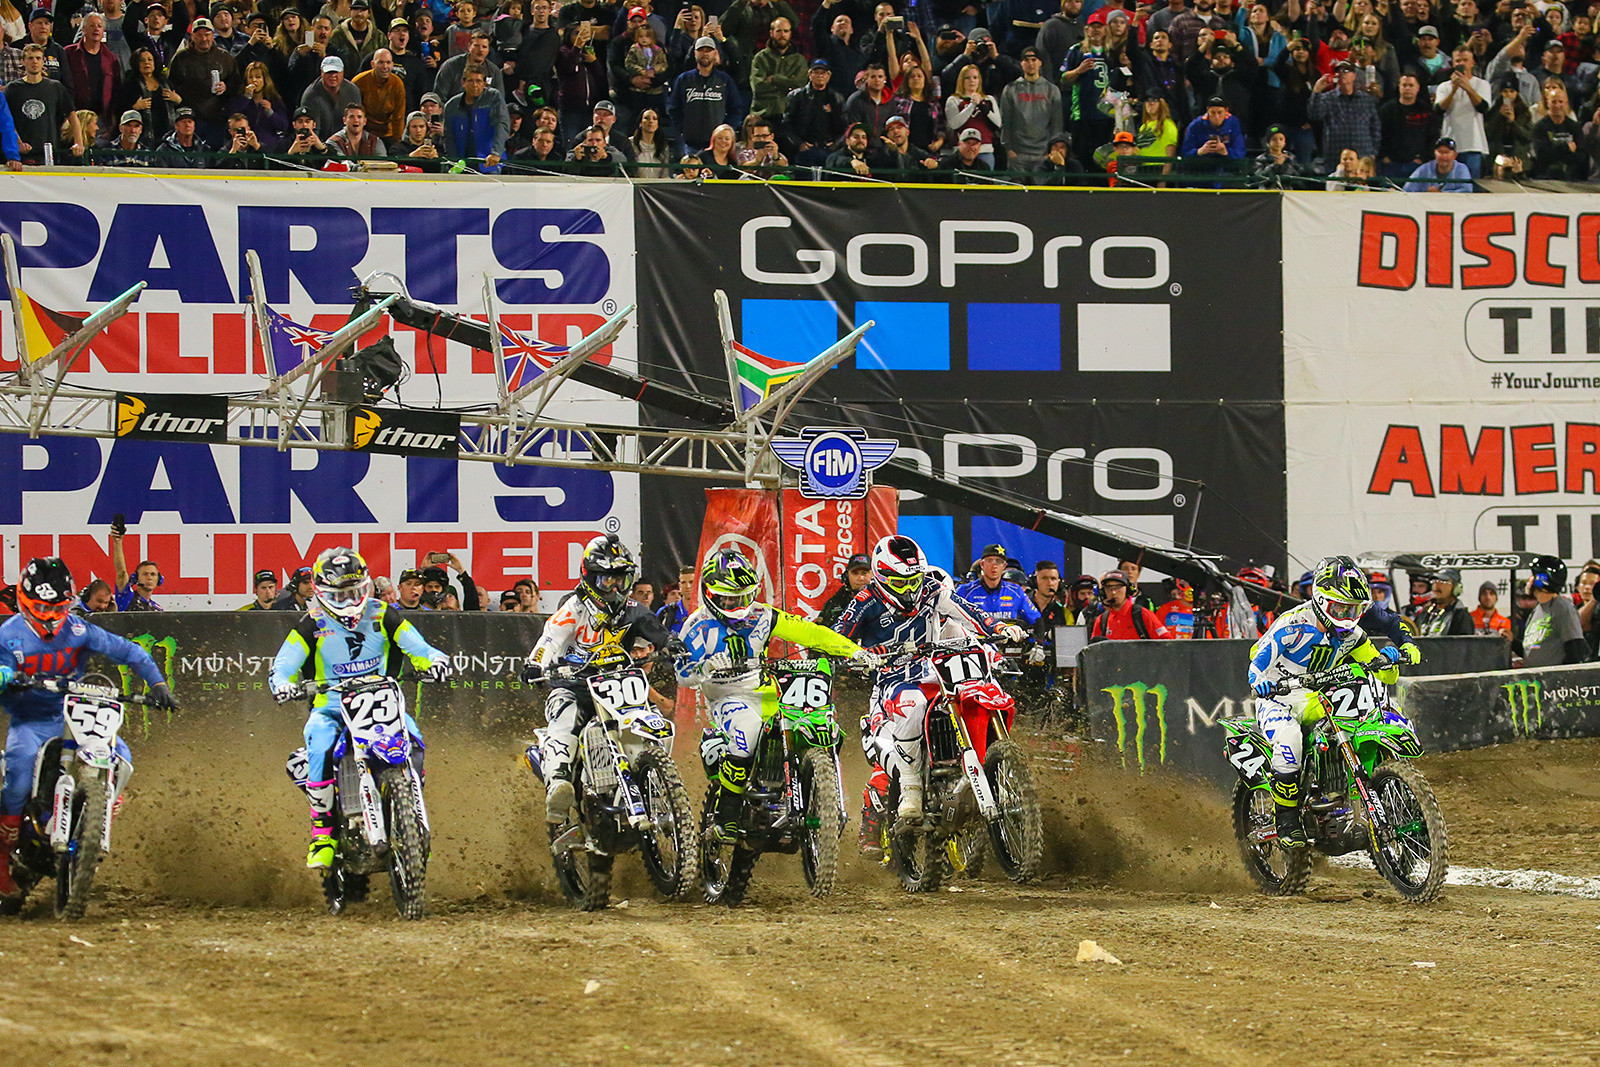 2018 Anaheim 1 Supercross Provisional Entry Lists Released